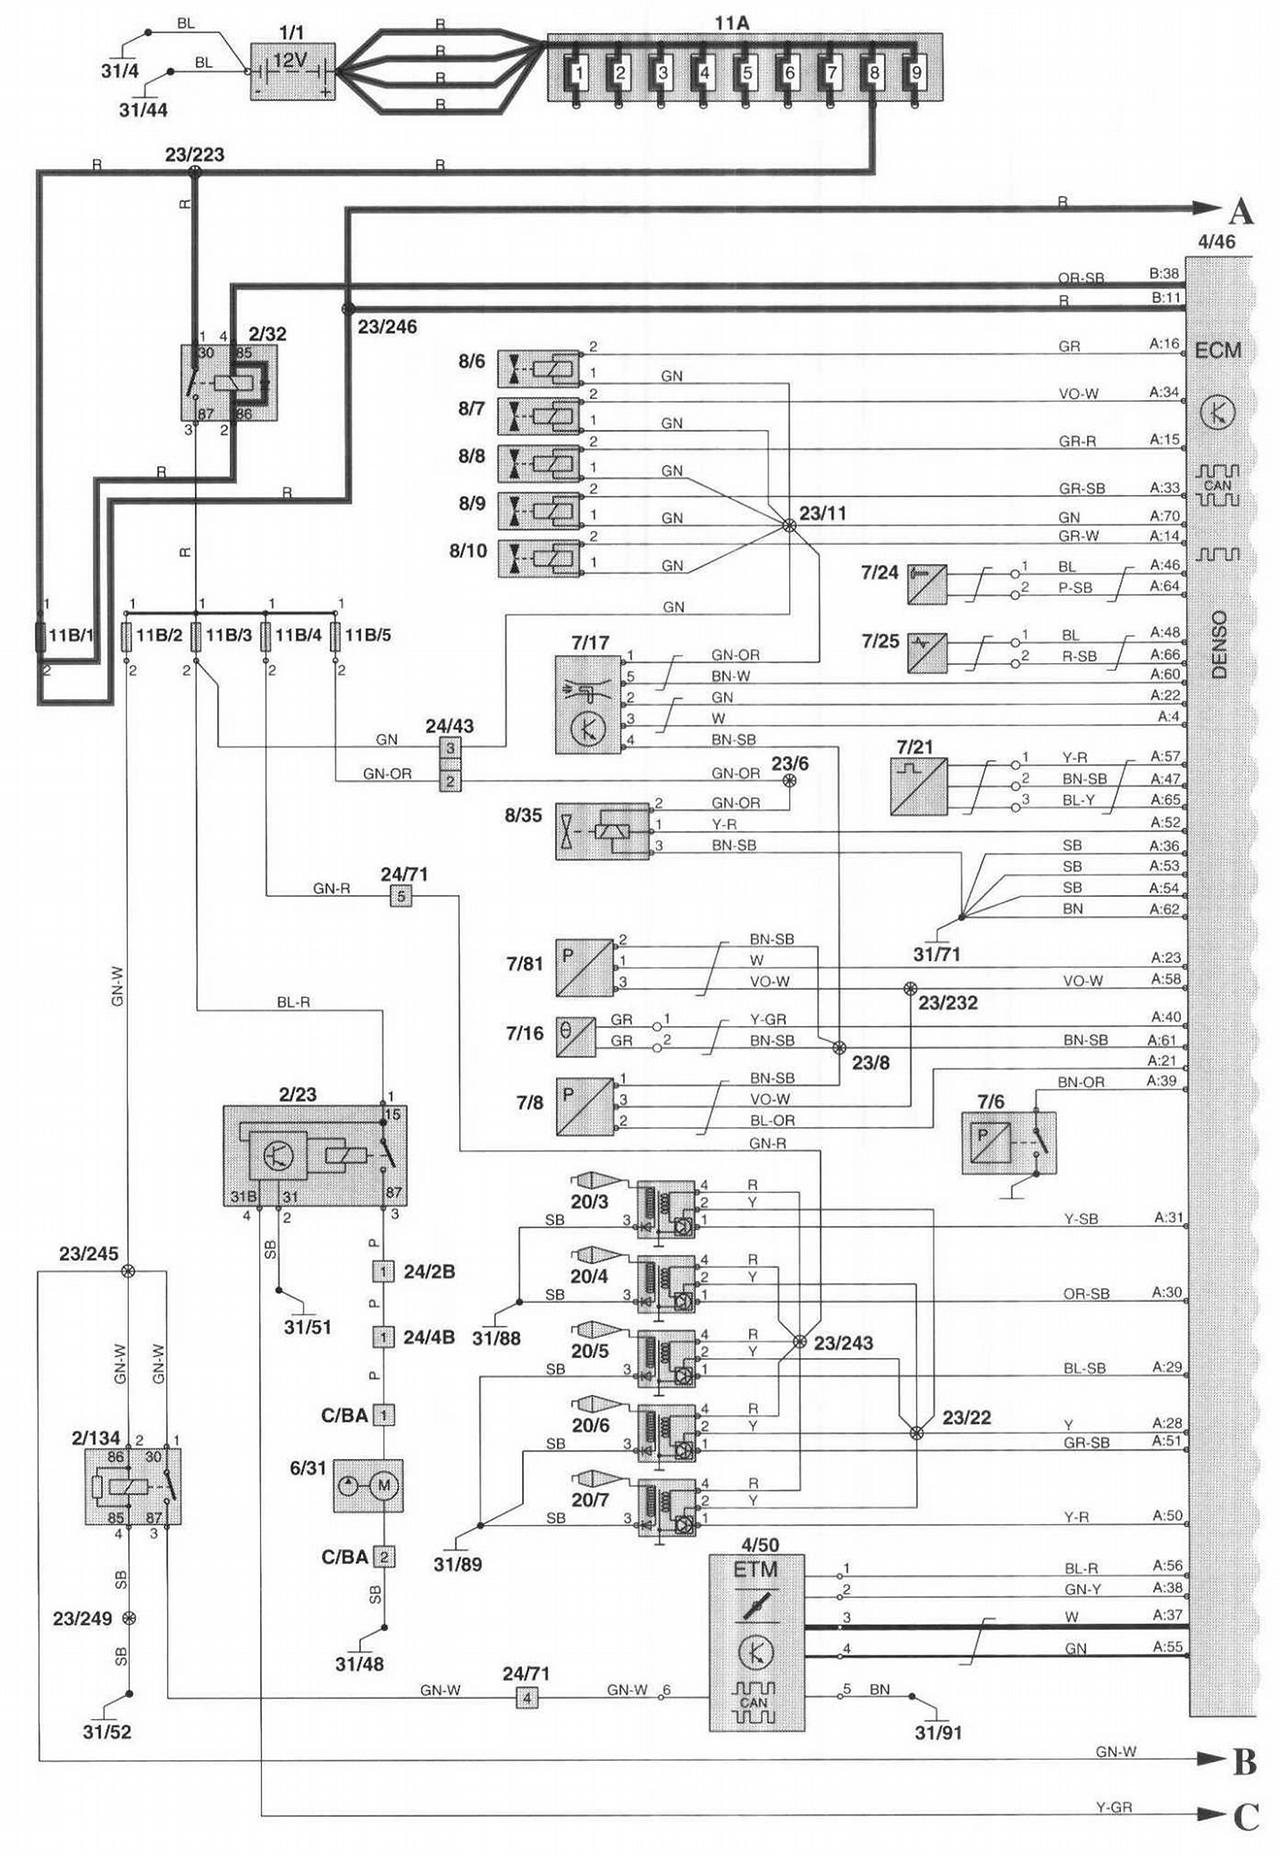 2007 volvo s40 radio wiring wiring diagram2006 volvo s40 fuse diagram wiring diagram2005 volvo s40 fuse diagram wiring diagrams40 wiring diagram wiring